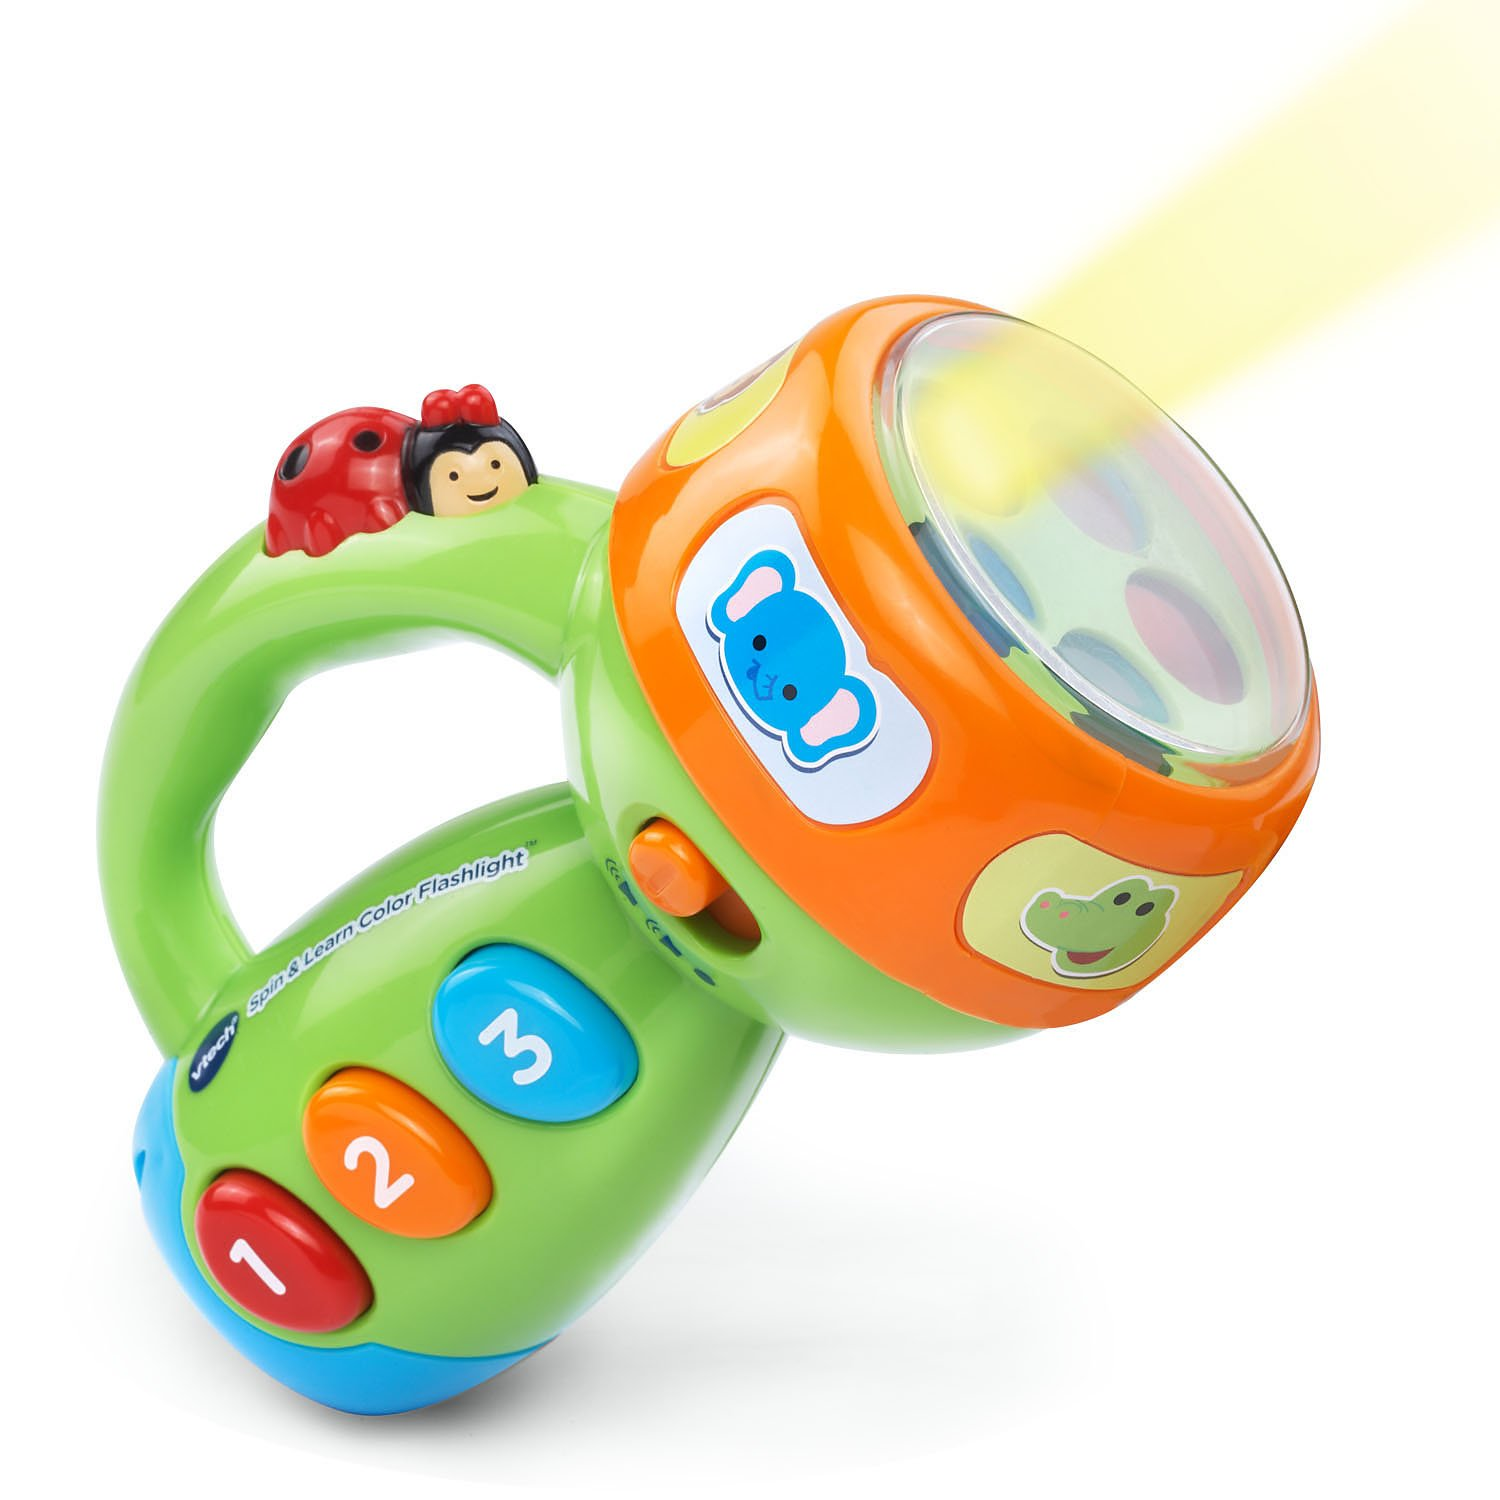 Amazon.com: VTech Spin & Learn Color Flashlight - Lime Green ...